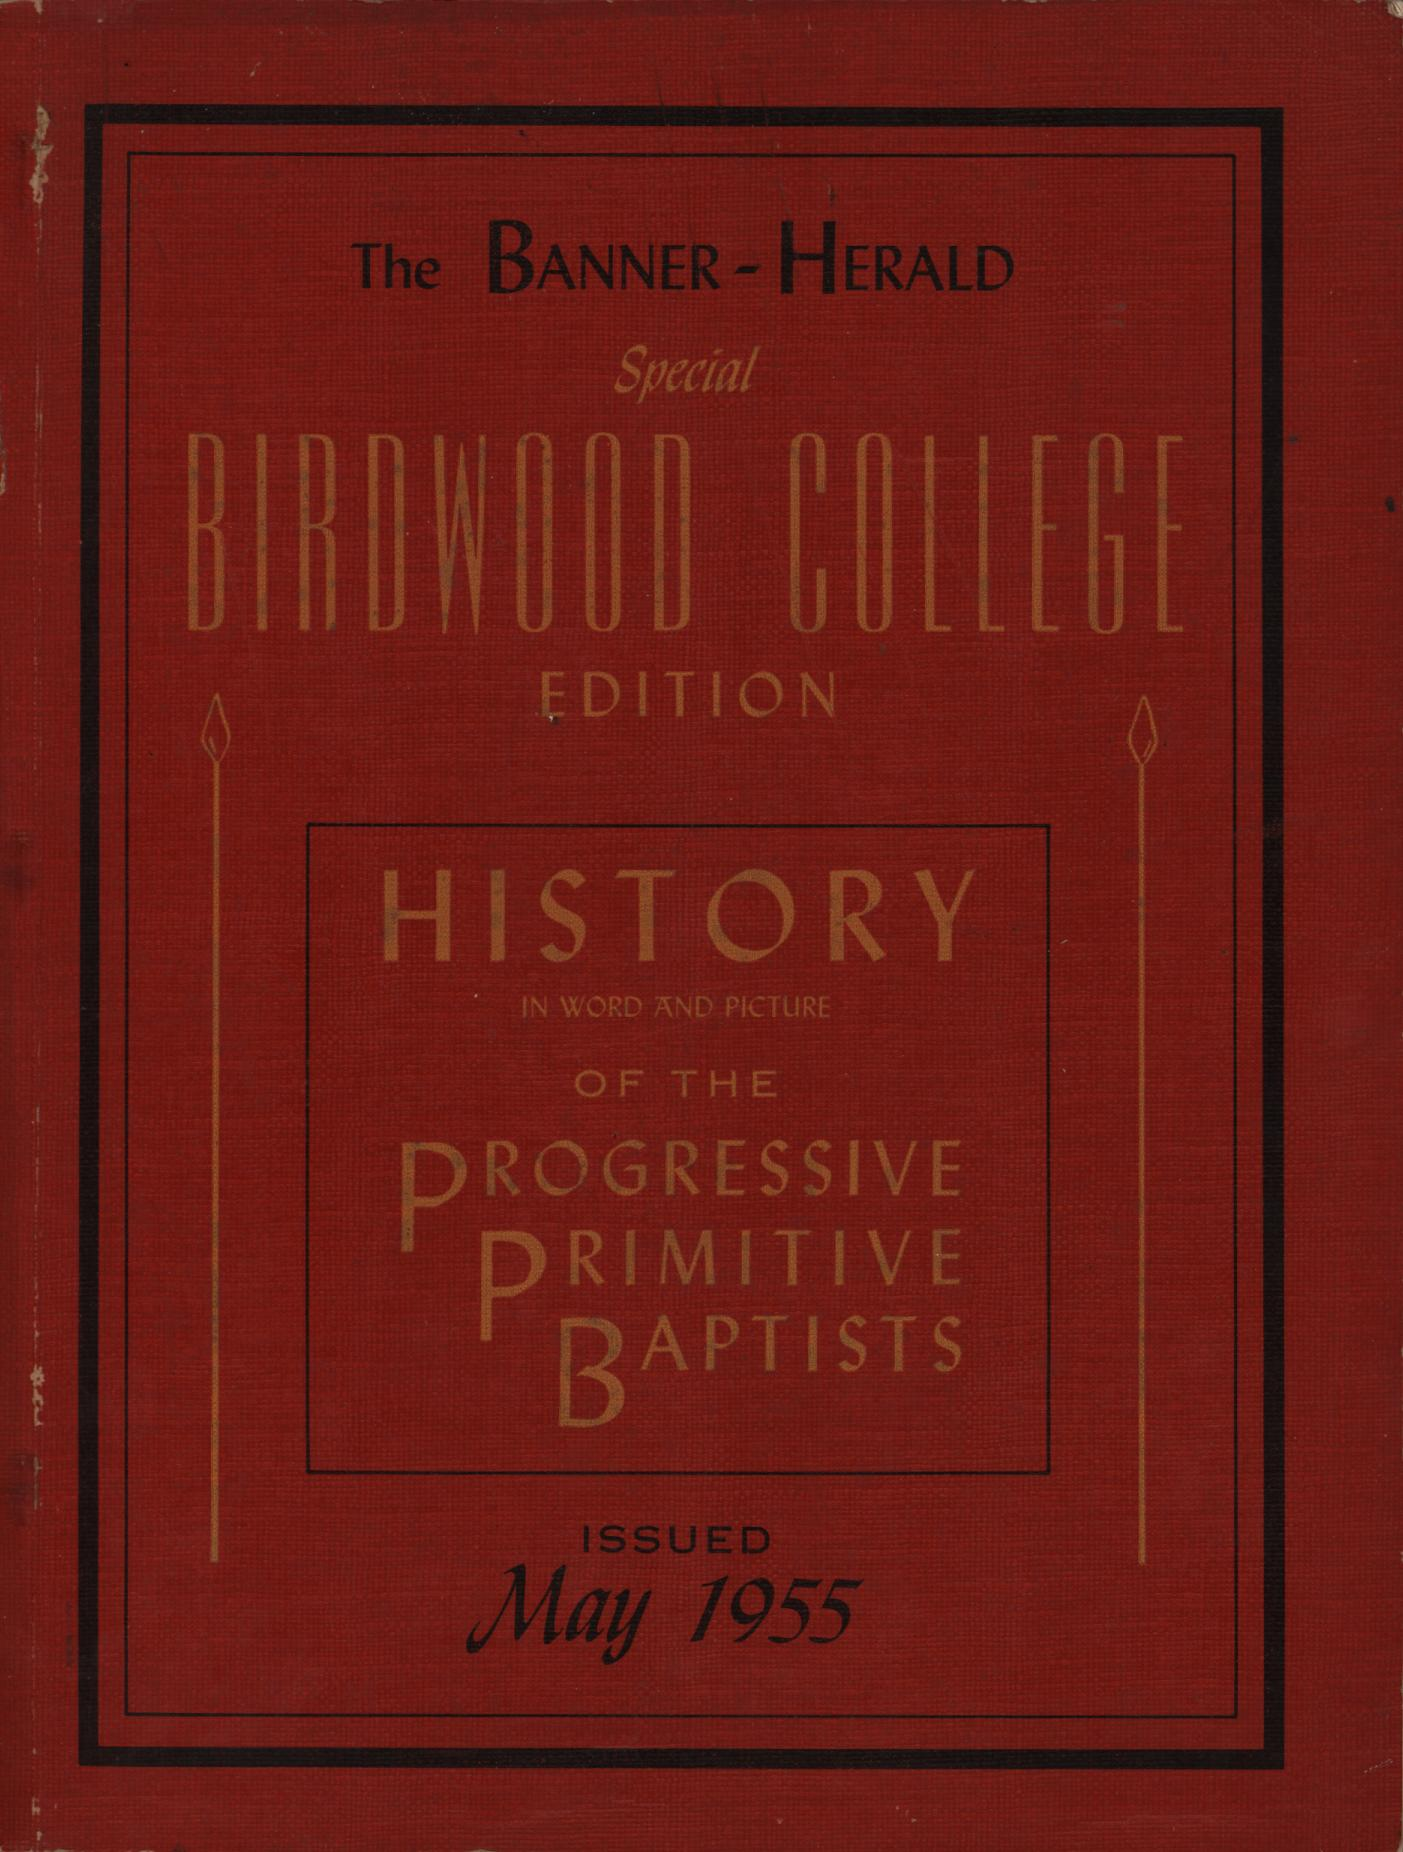 Image for The Banner-Herald Special Birdwood College Edition: History in Word and picture of the Progressive Primitive Baptists Issued 1955 (FIRST EDITION)